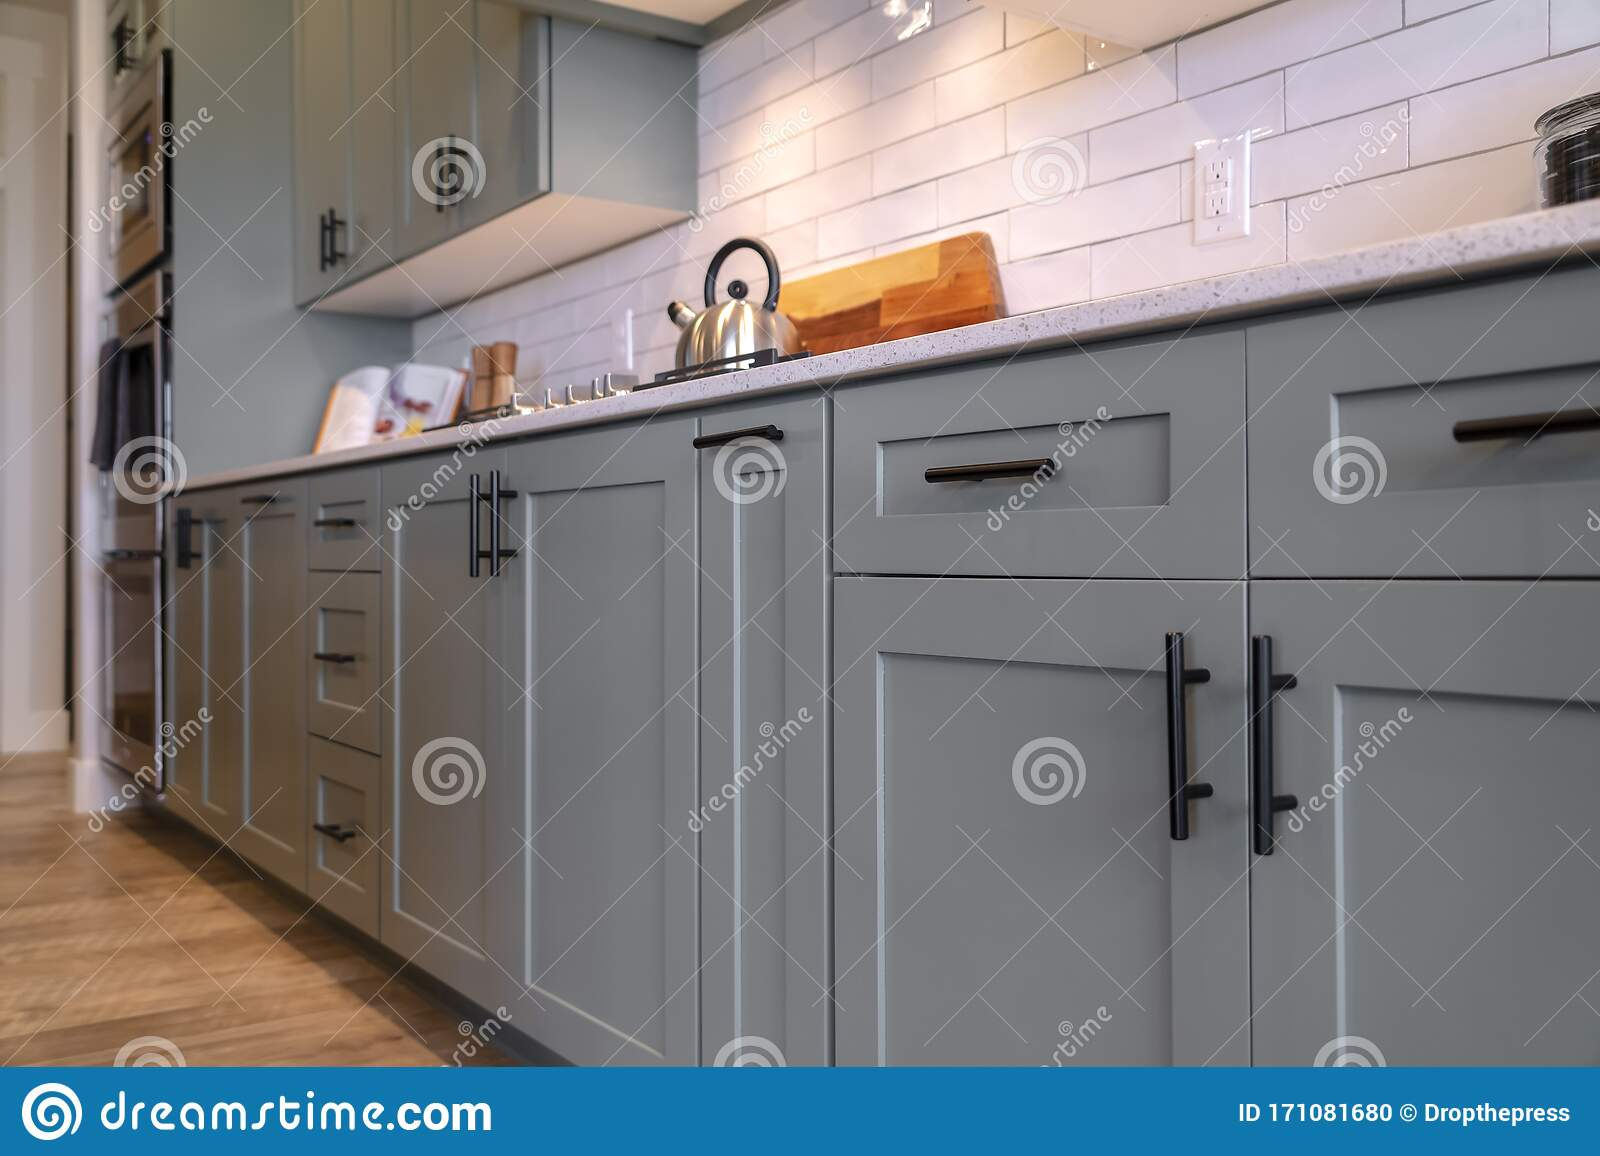 - Kitchen Cabinets With White Countertop Black Handles And Tile